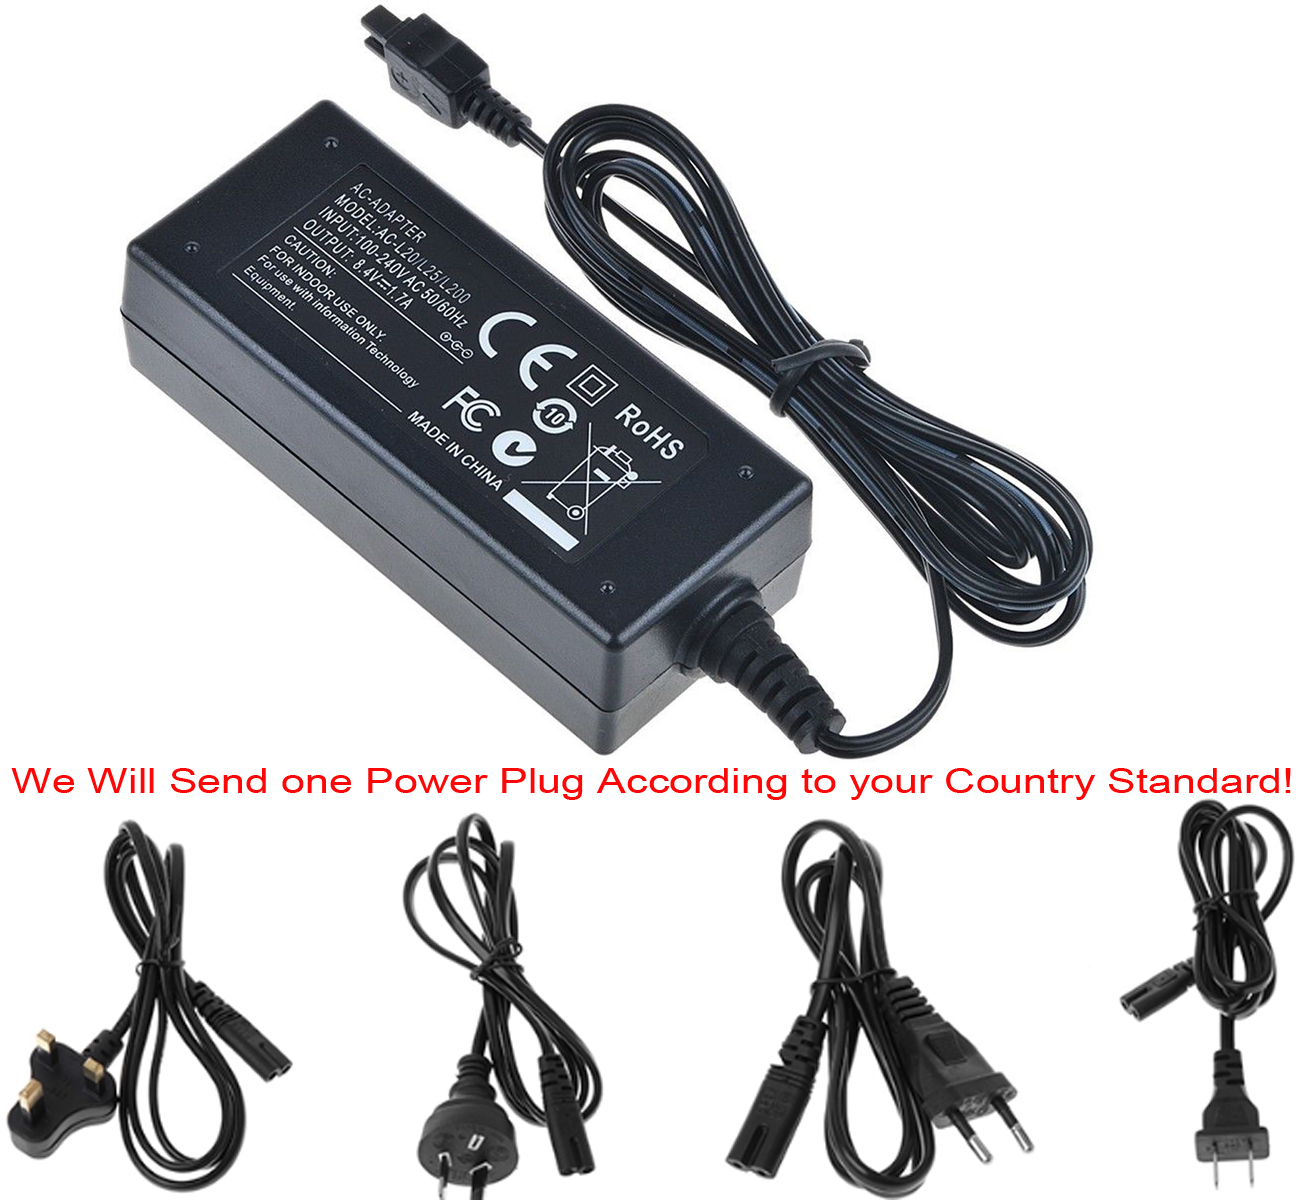 HDR-CX120 Handycam Camcorder HDR-CX105 USB LCD Display Battery Charger for Sony HDR-CX100 HDR-CX106